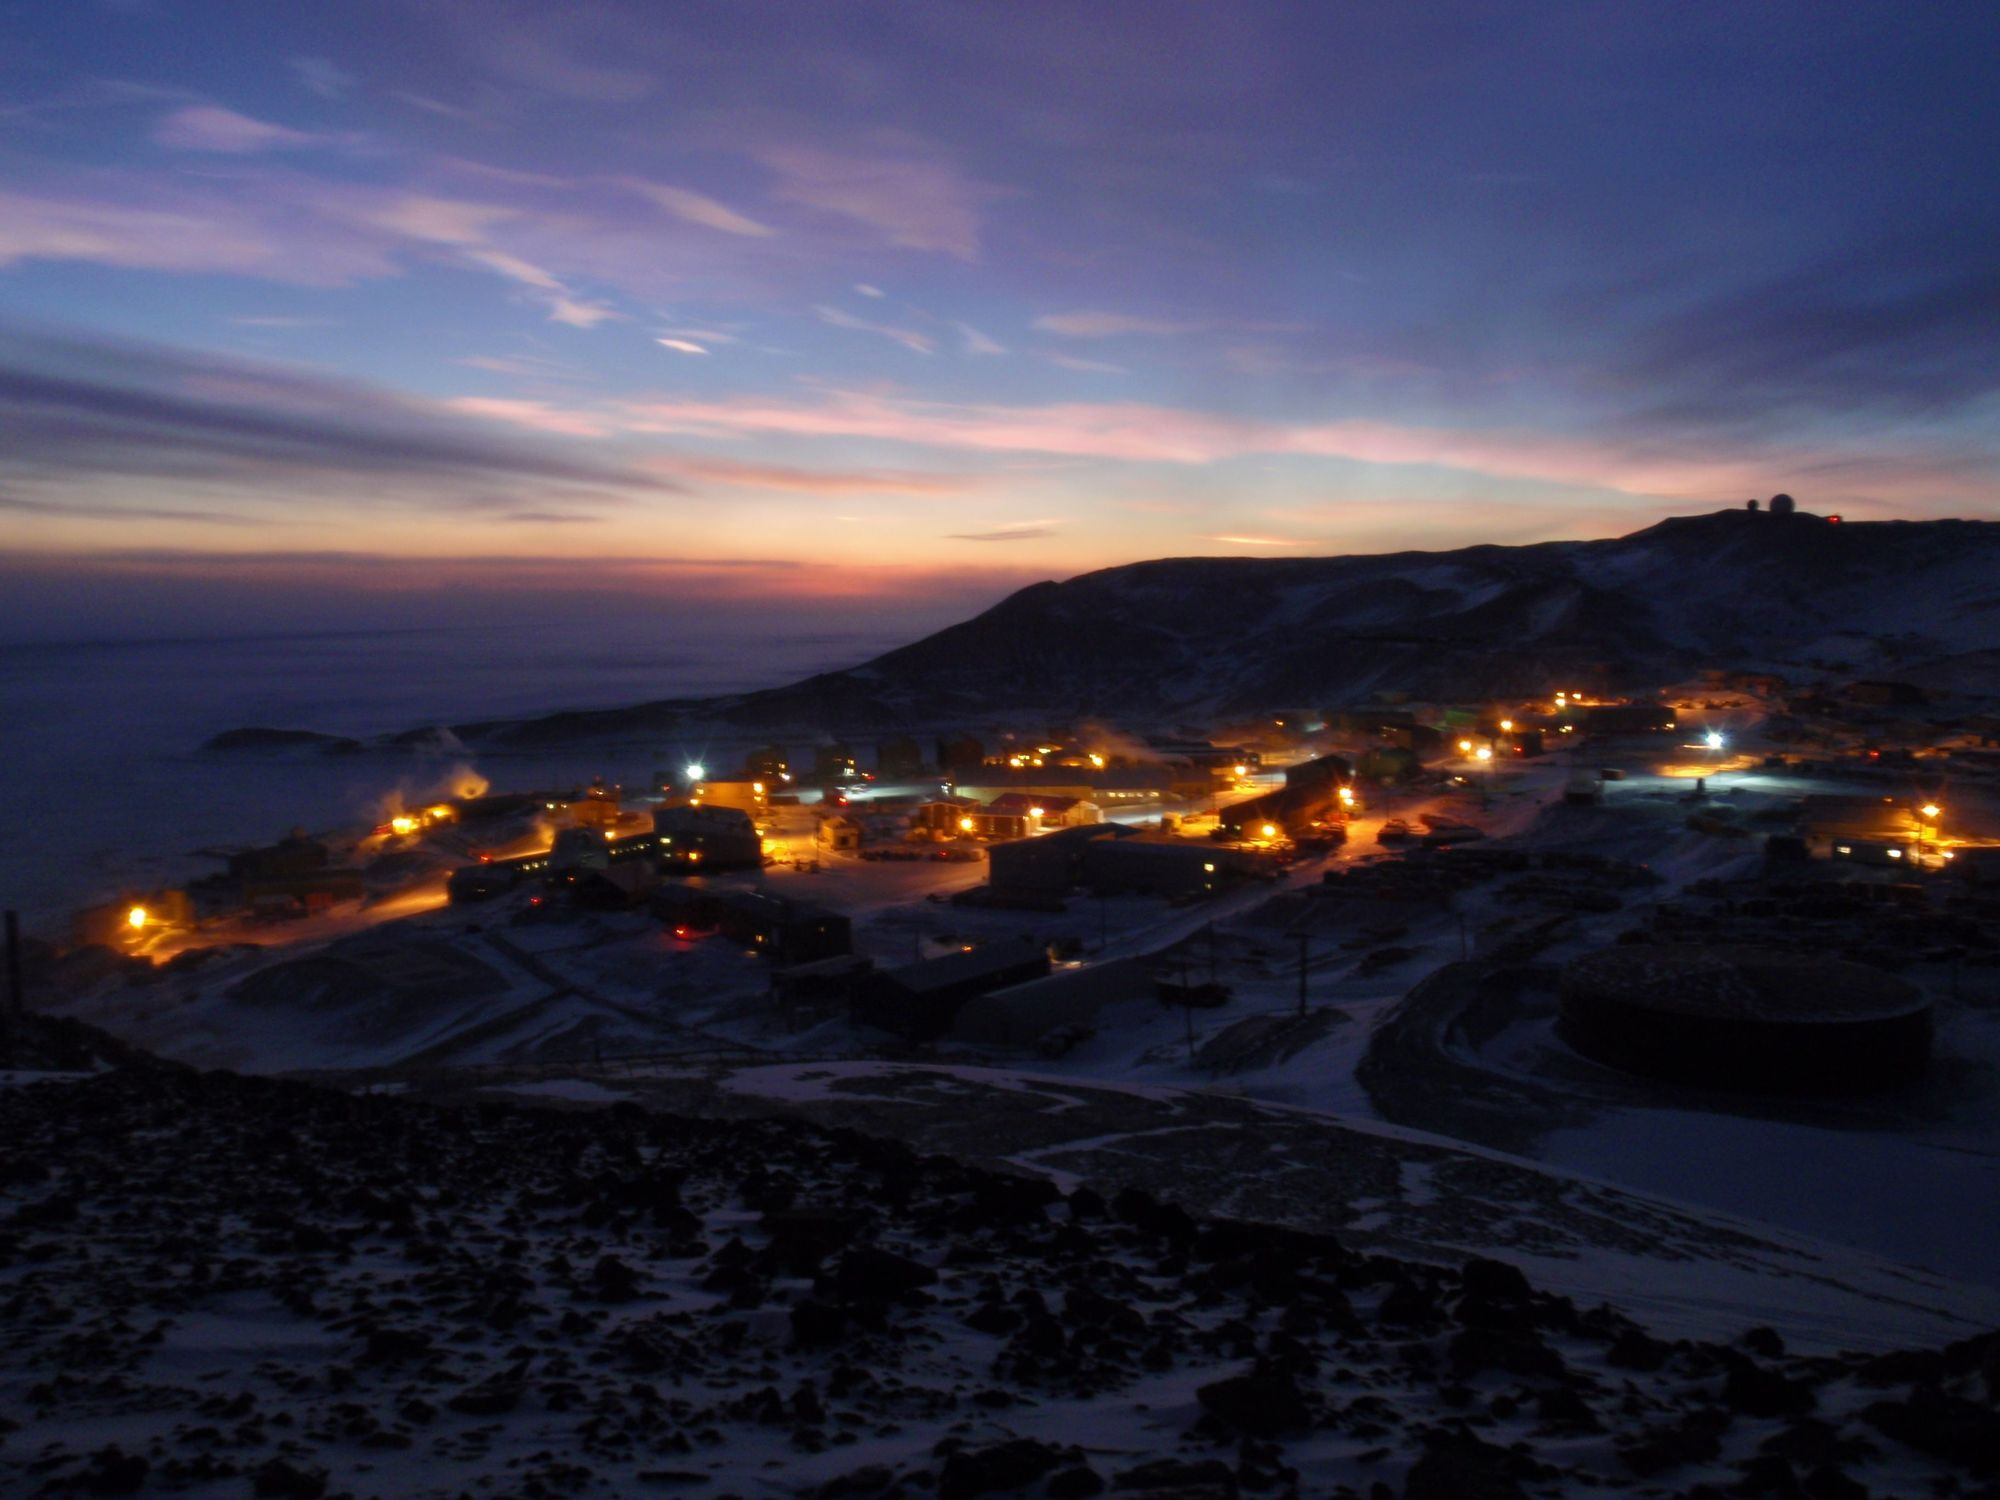 Sunset over Antarctic - Nacreous Clouds Over McMurdo 5, by Alan Light, Shared under a Creative Commons Attribution License